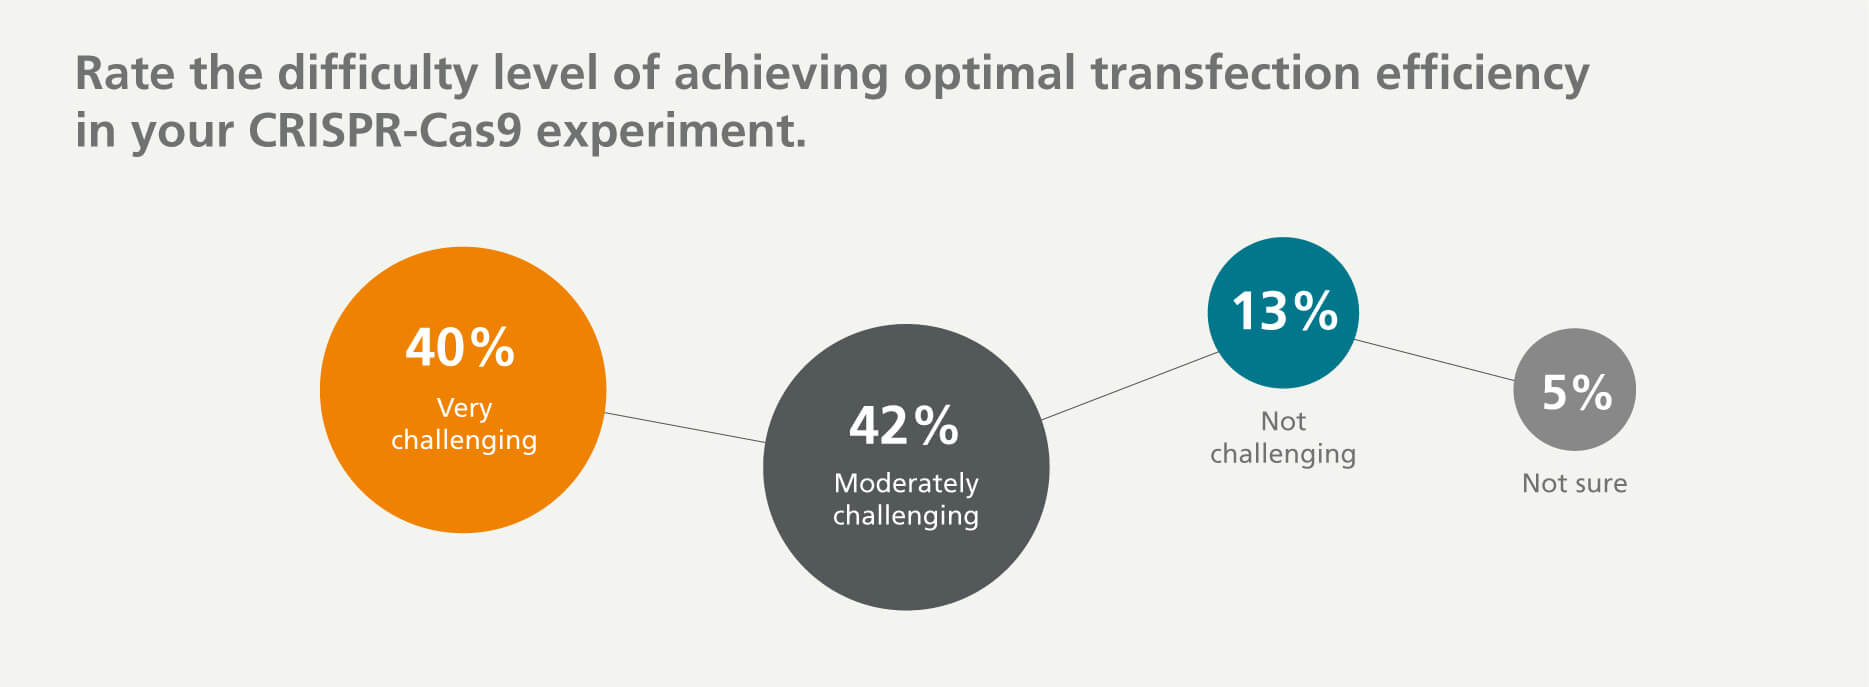 40% of survey respondents find it very challenging to achieve optimal transfection efficiency, 42% find it moderately challenging, 13% don't find it challenging, and 5% are not sure.